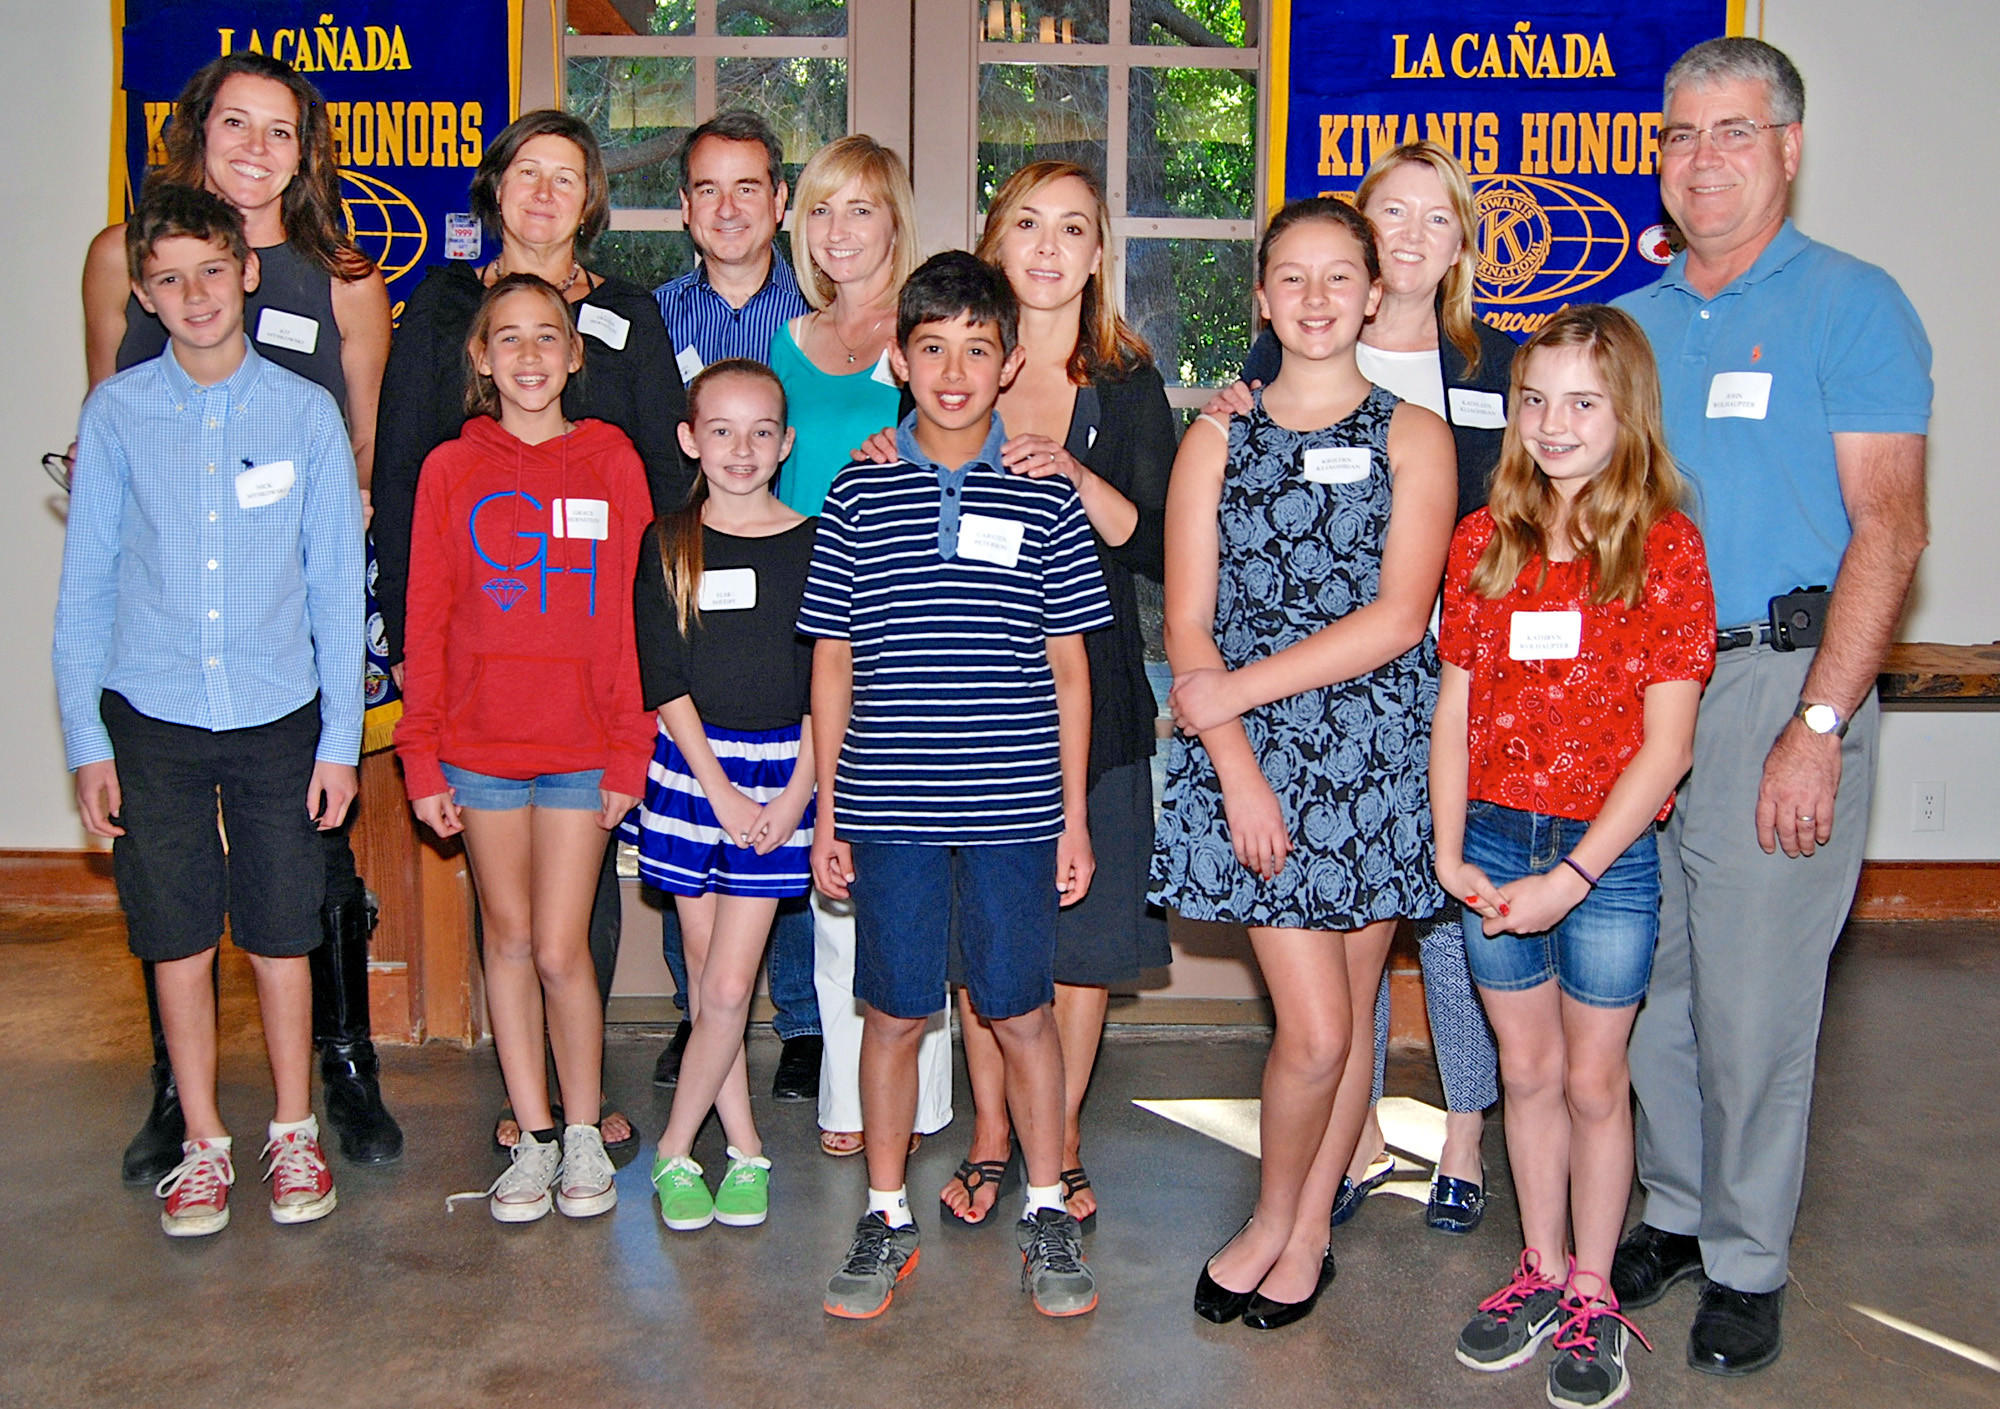 "Six Palm Crest Elementary School students were honored as ""Terrific Kids"" by the Kiwanis Club of La Cañada this month. Shown from left to right, with their parents standing behind them, are: Nick Myskowski, Grace Bernstein, Elsa Sheehy, Carsten Peterson, Kristin Kilaghibian and Kathryn Wolhaupter."